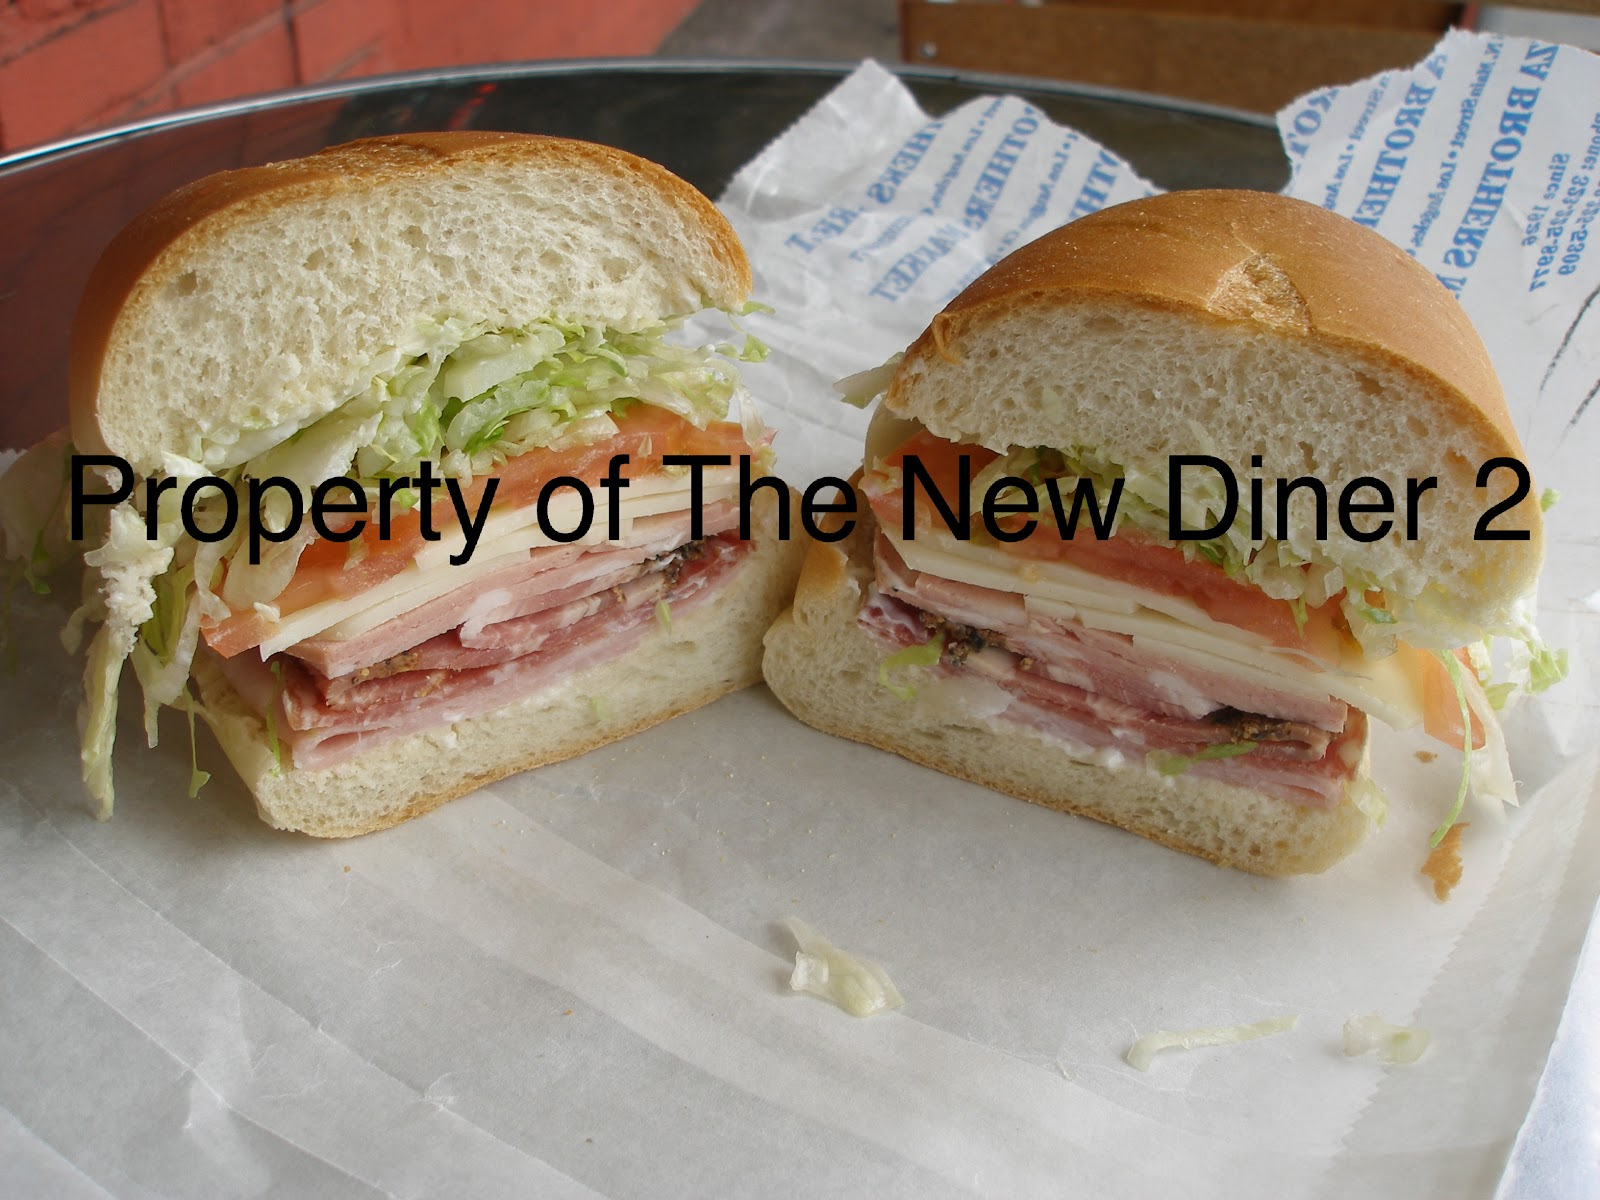 The New Diner 2: Lanza Brothers Market